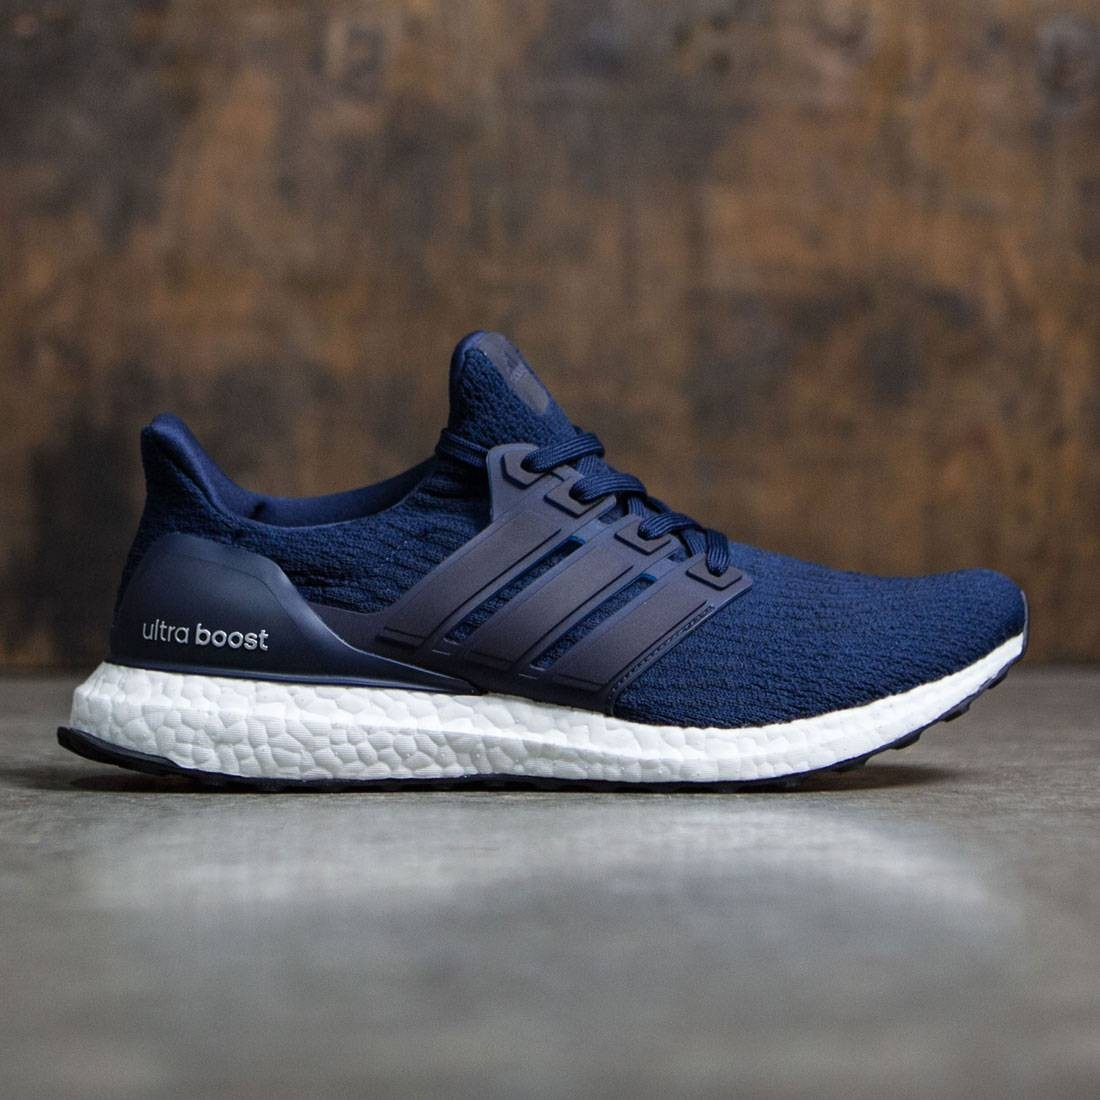 3c6d07424 Adidas Men Ultra Boost navy collegiate navy night navy